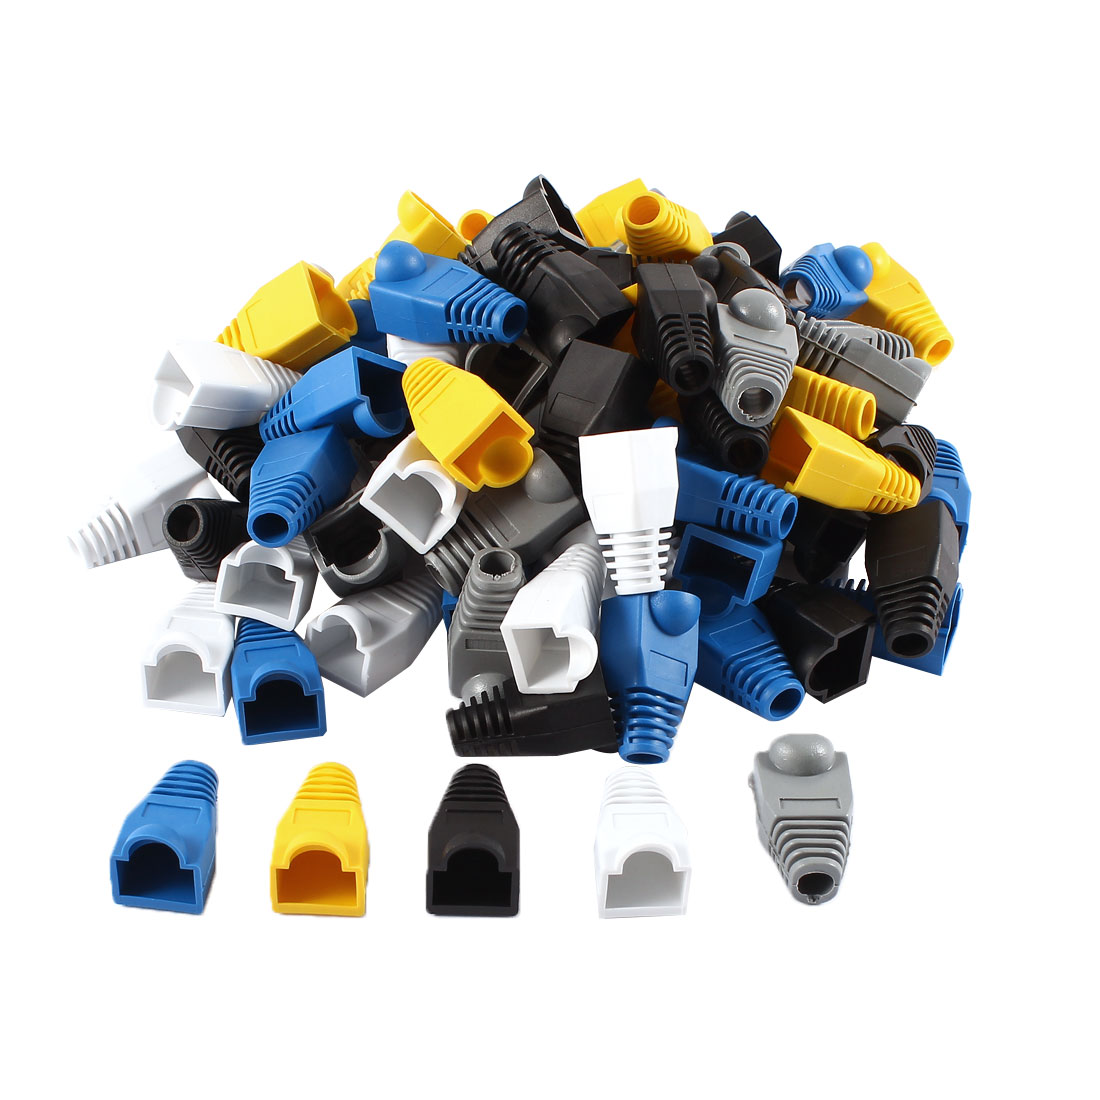 100 Pcs Soft Plastic Ethernet RJ45 Cable Connector Boots Cover